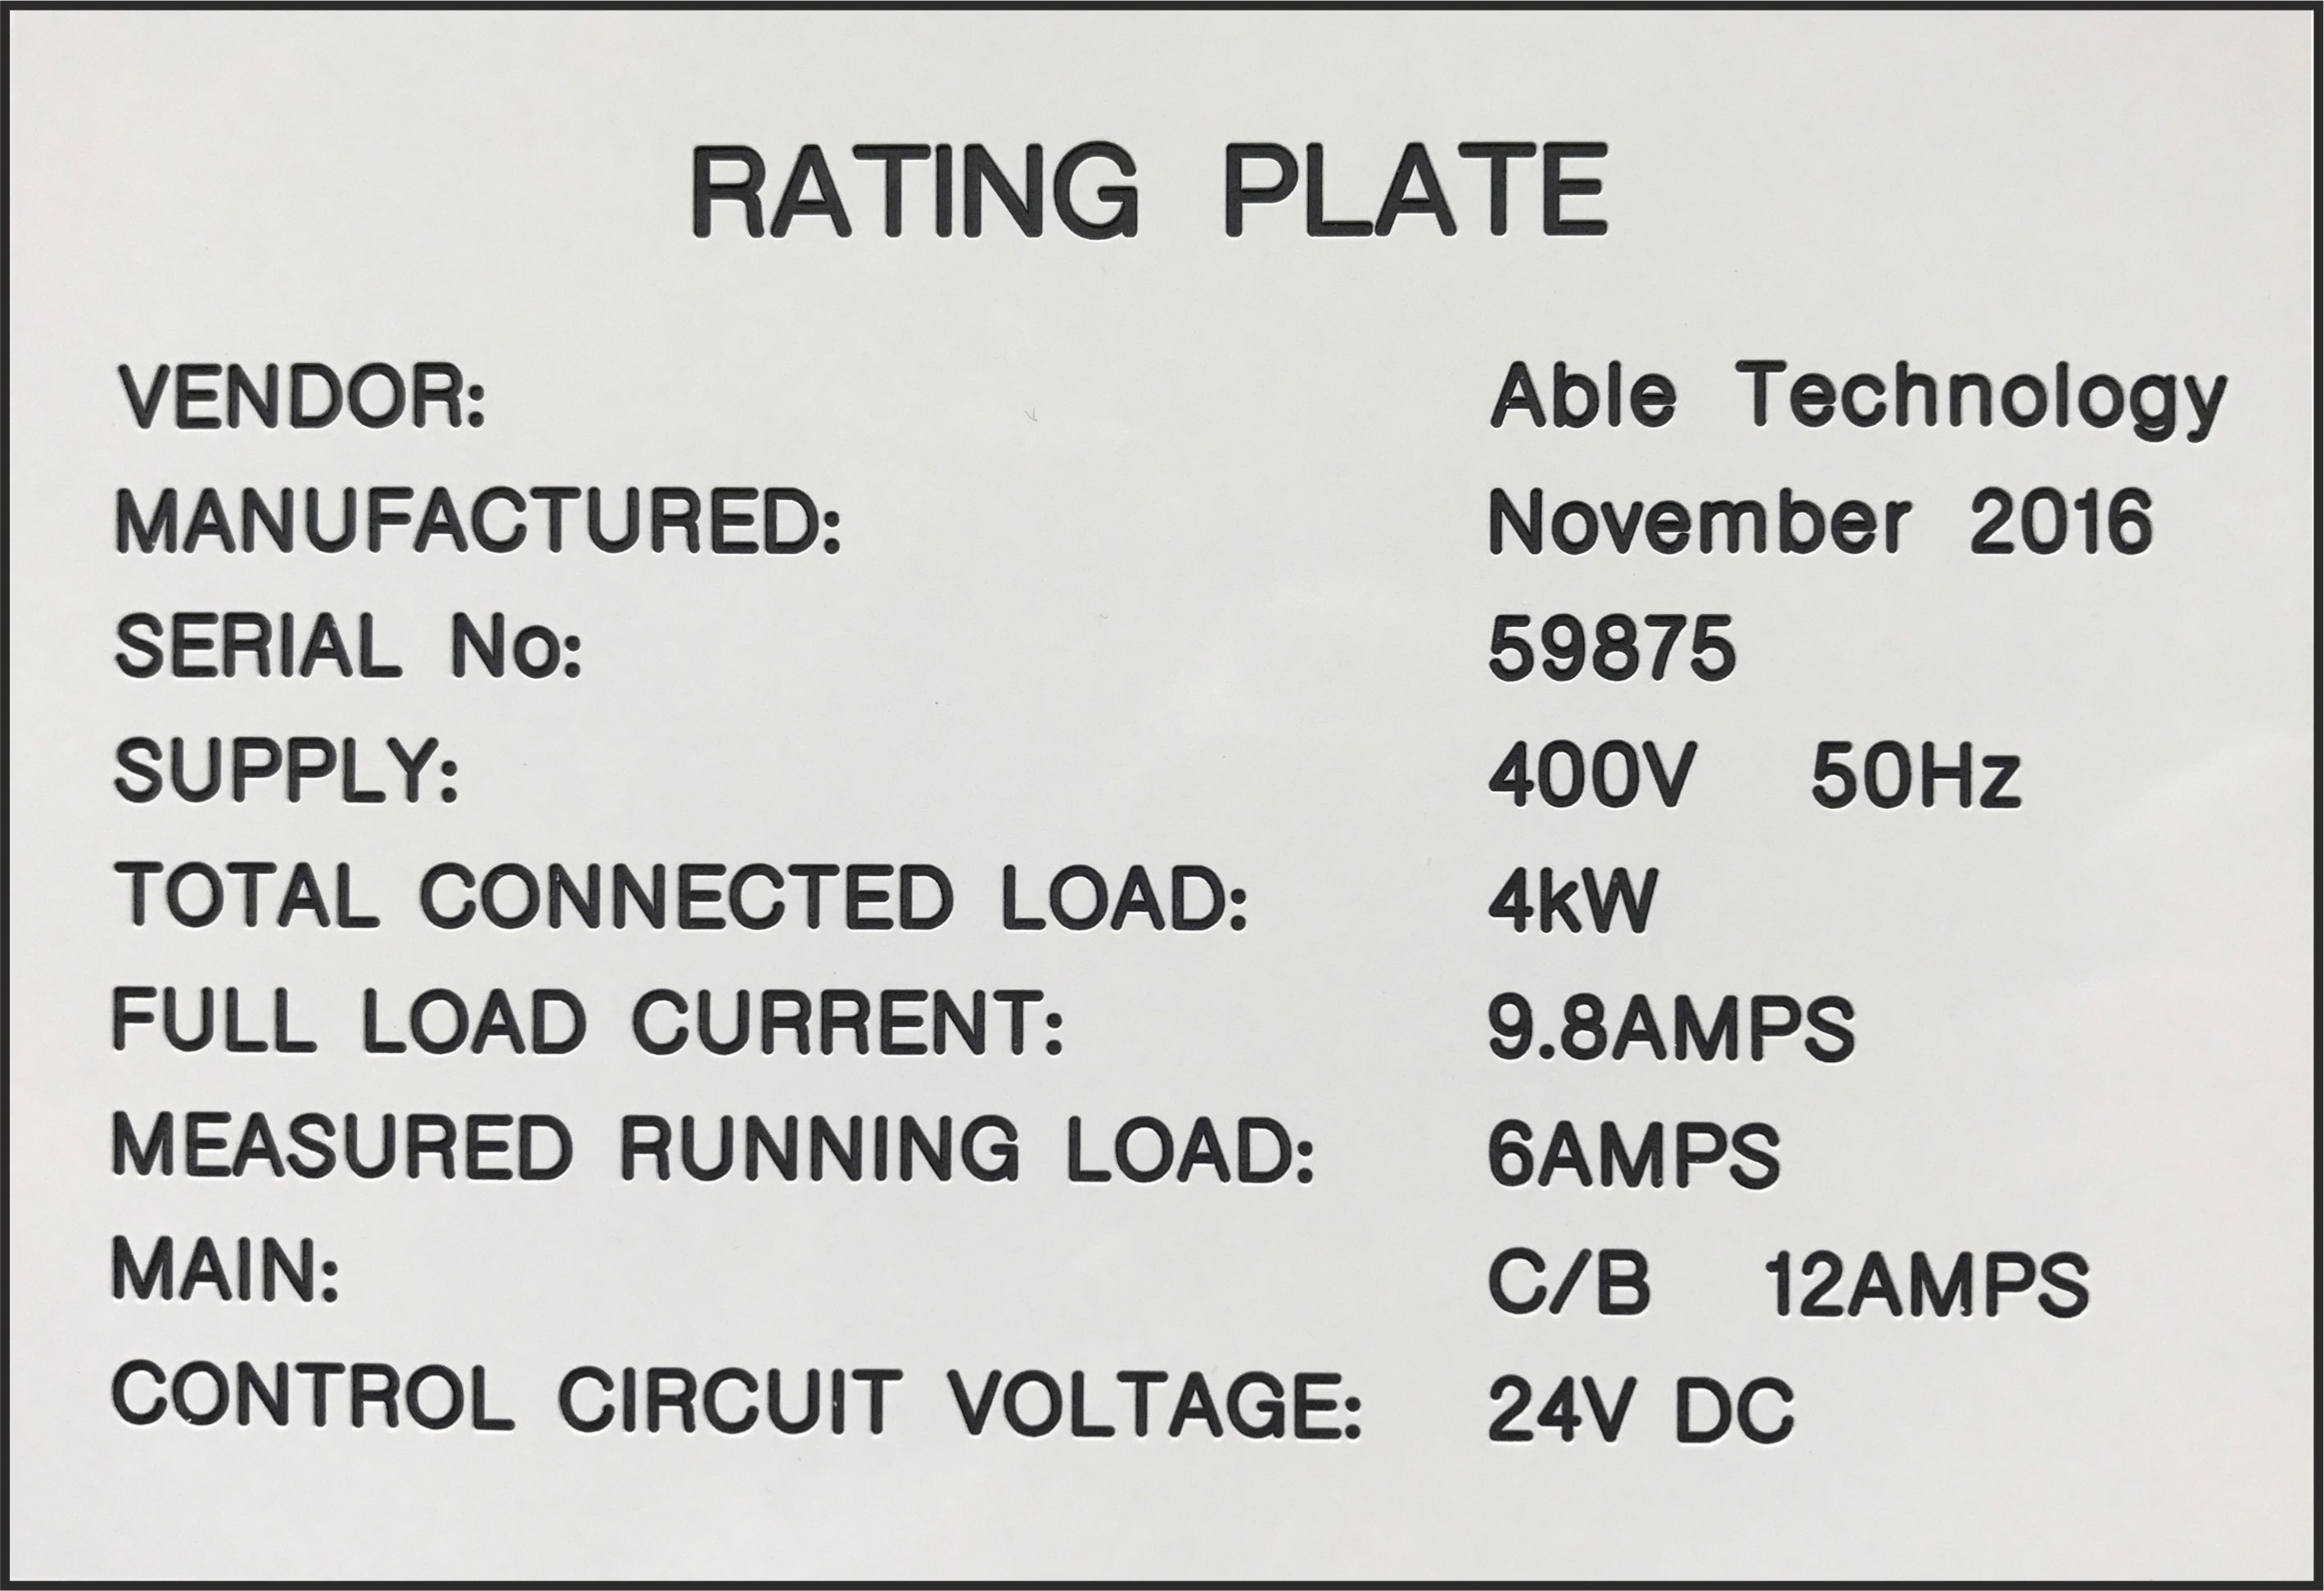 A Traffolyte Specification Label